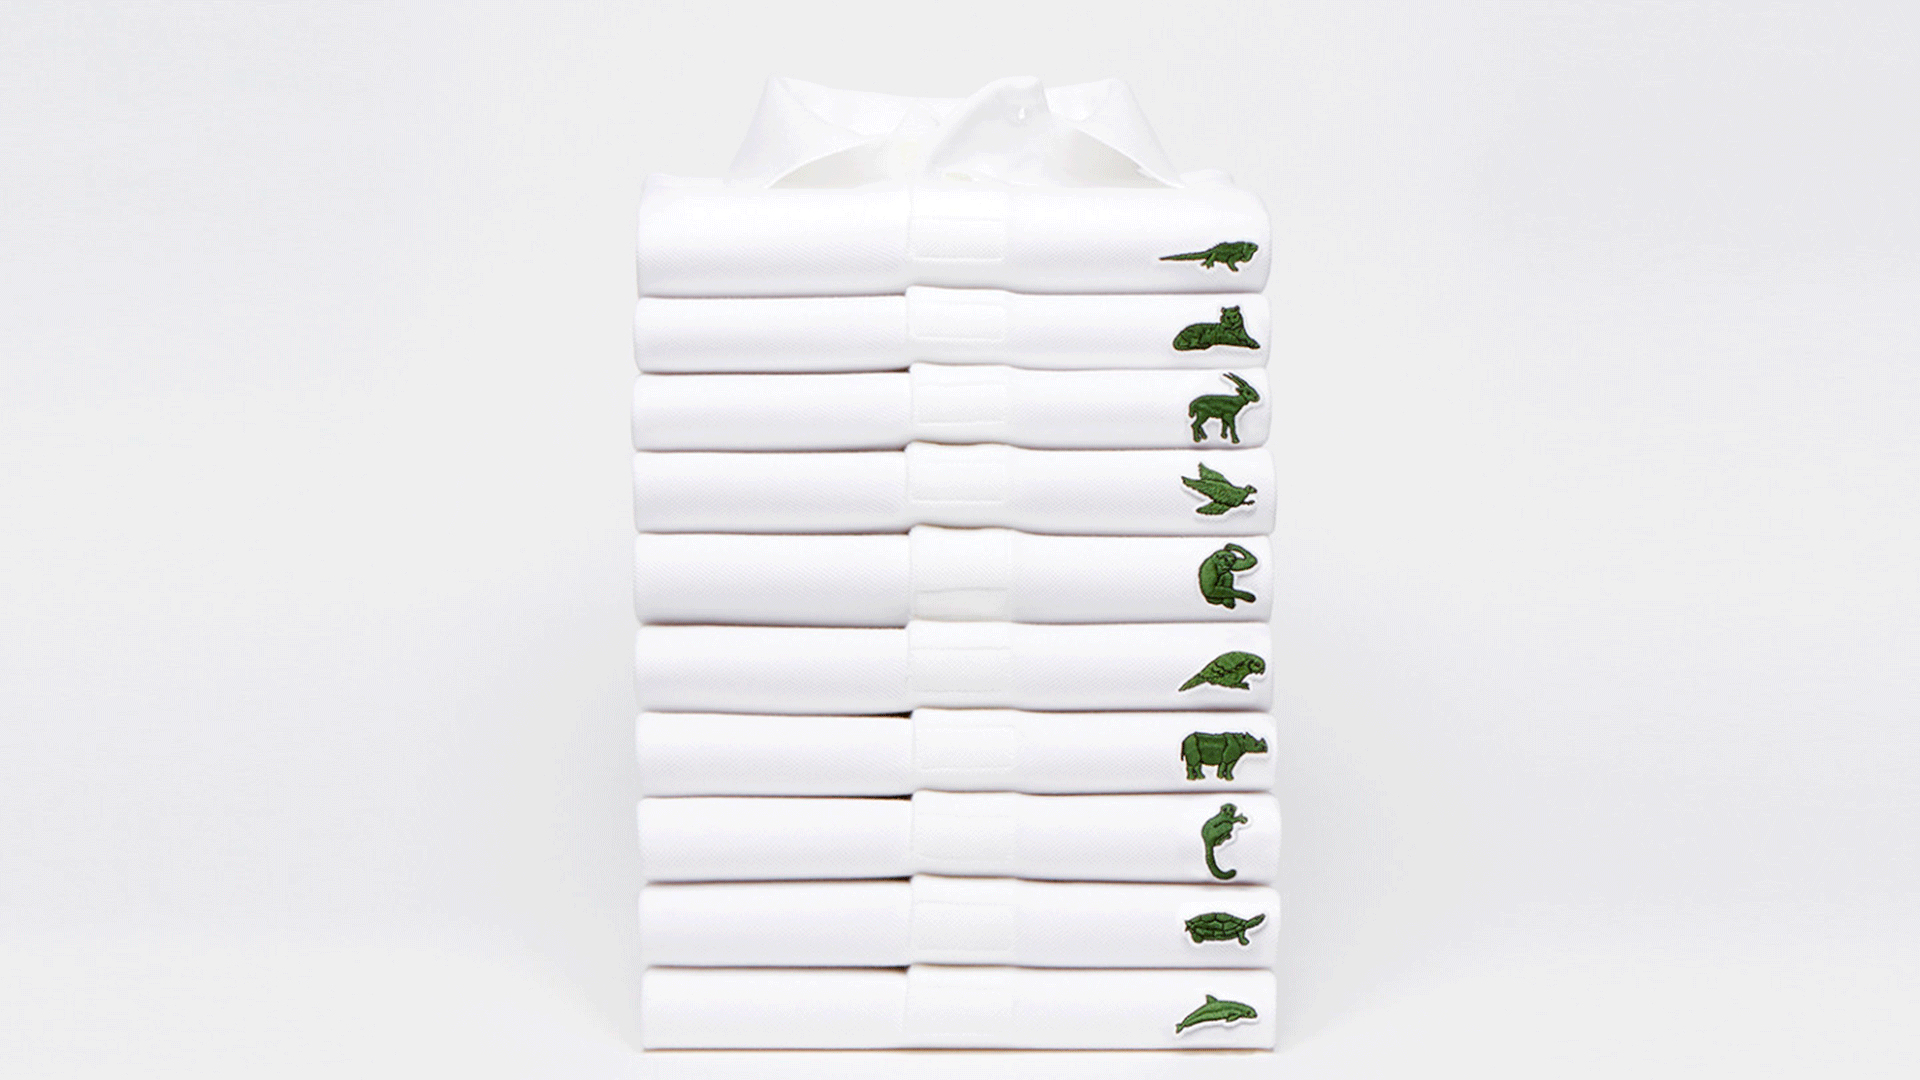 Lacoste x Nature hero asset